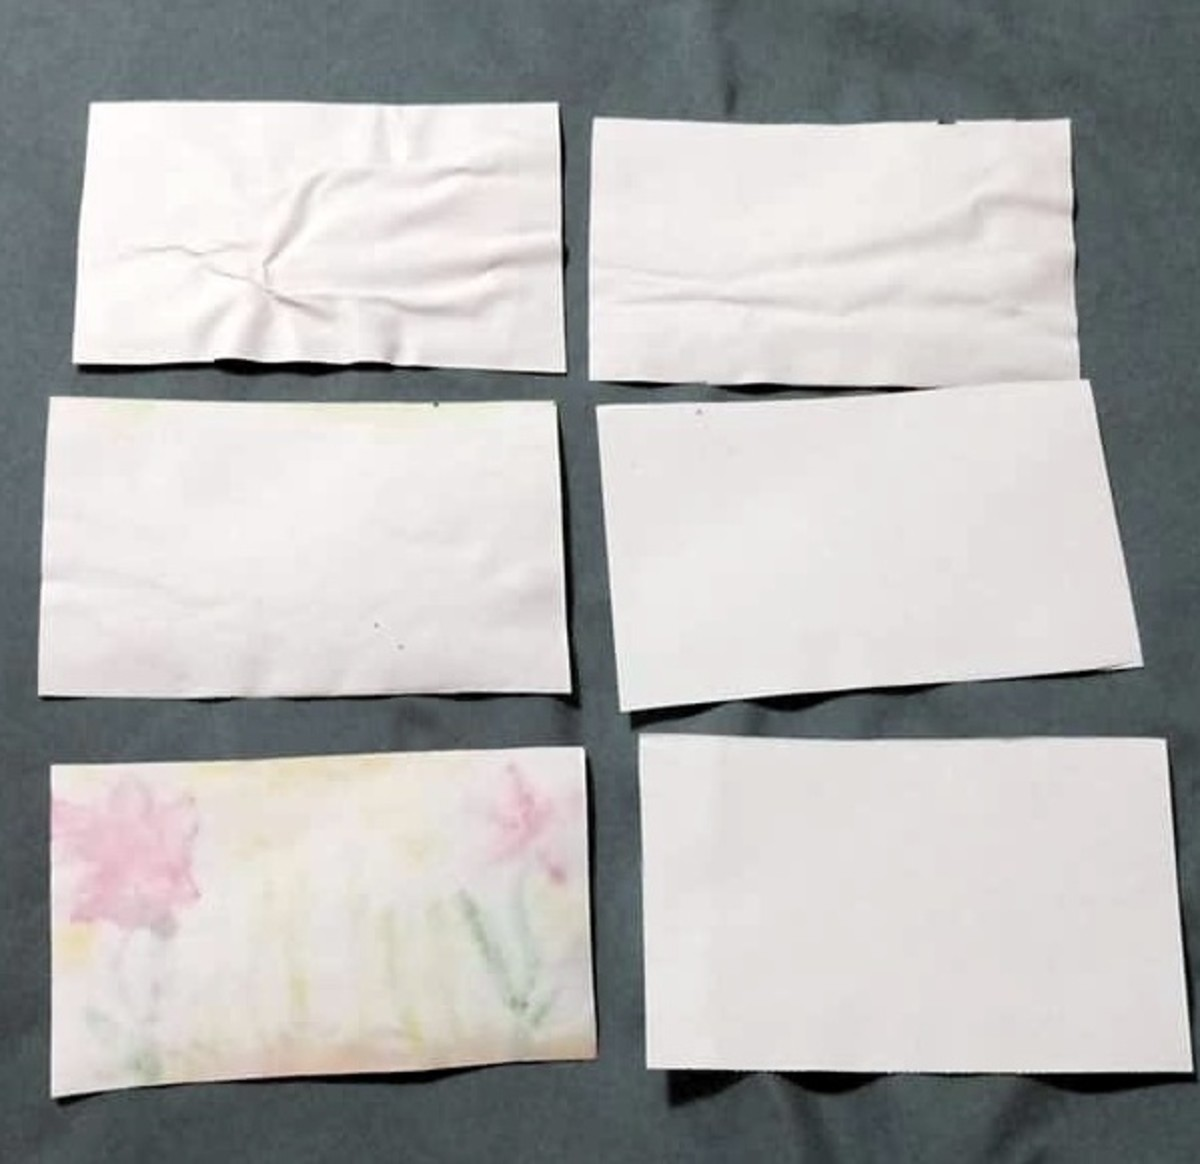 Cut the sheet of paper into 8 equal parts. There are only six shown here, but you should have 8.